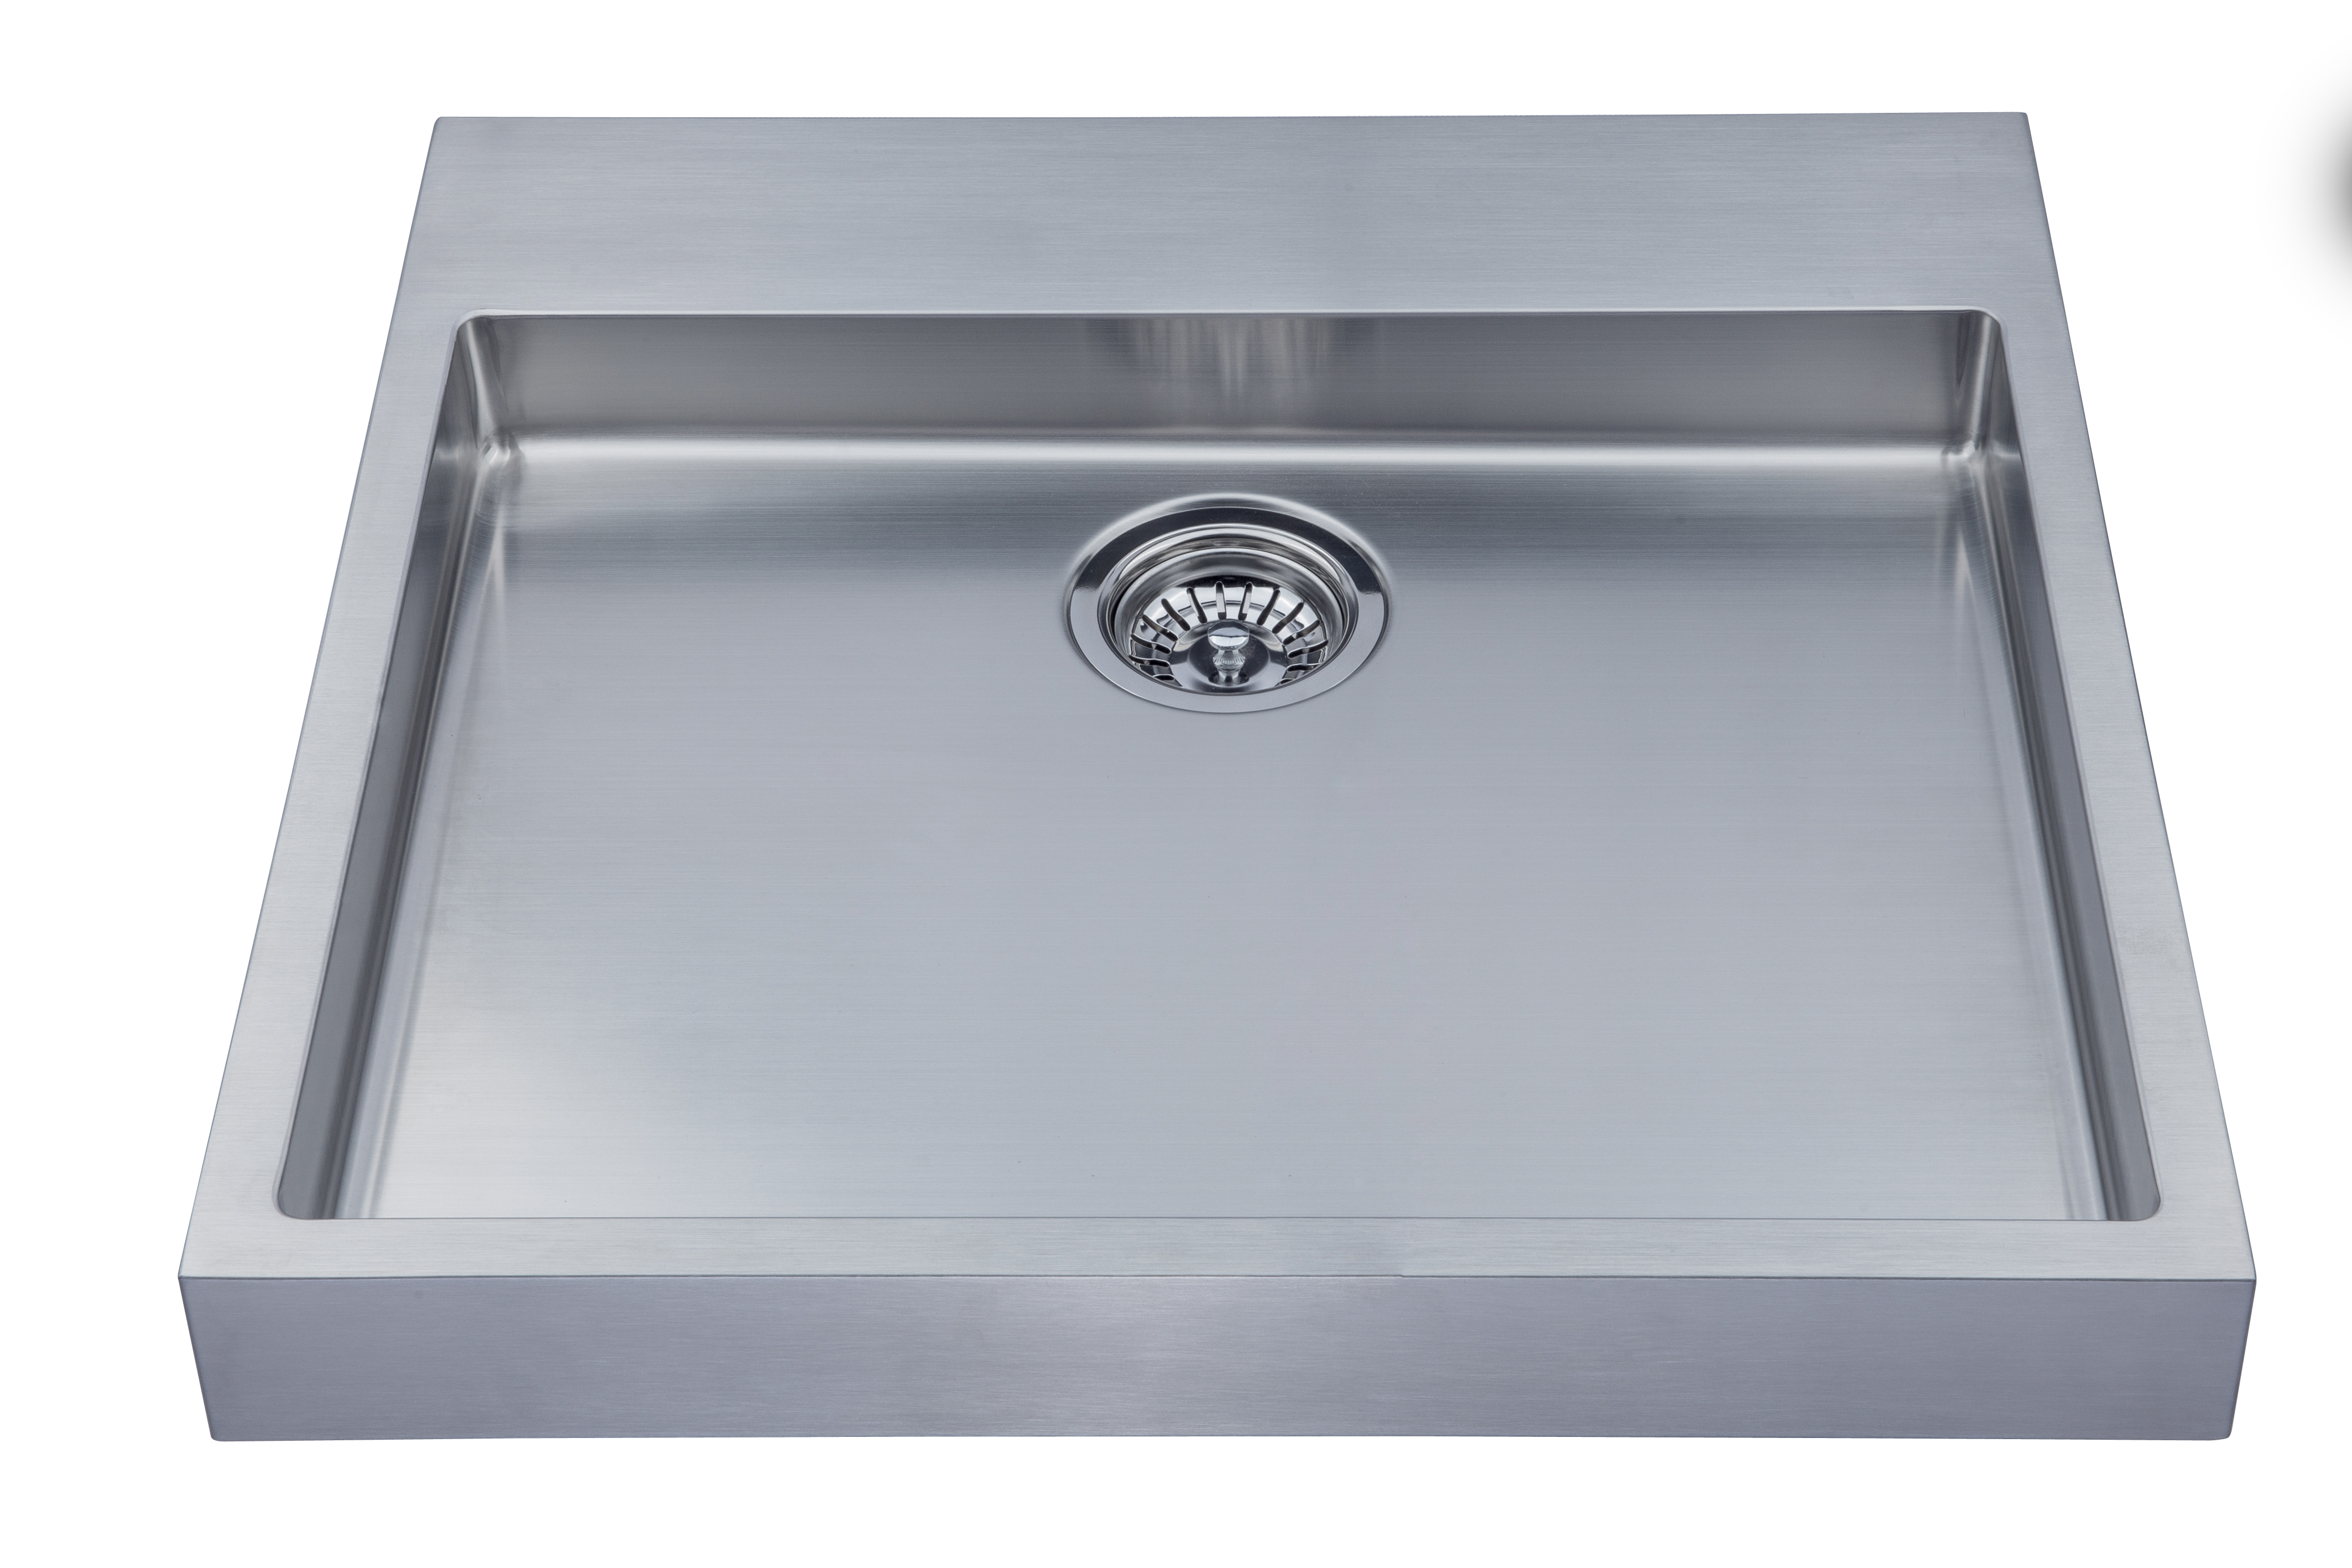 As358 24 x 23 5 x 3 18g single bowl vessel legend for Colored stainless steel sinks